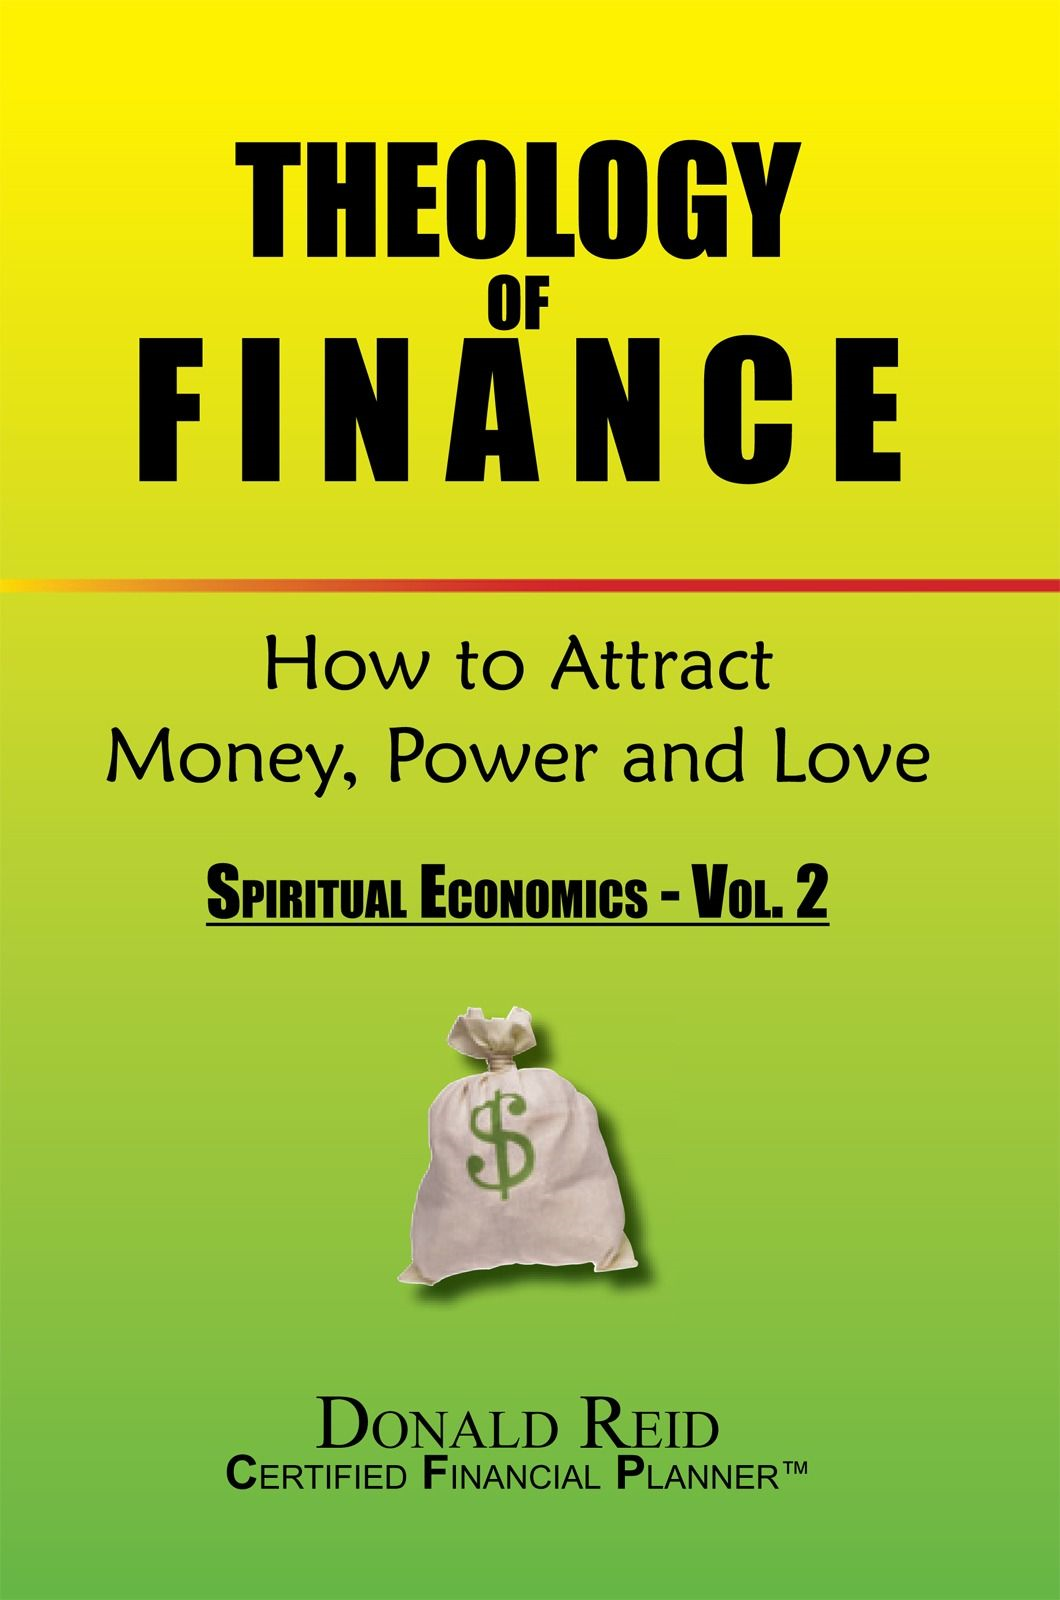 Theology of Finance: How to Attract Money, Power and Love